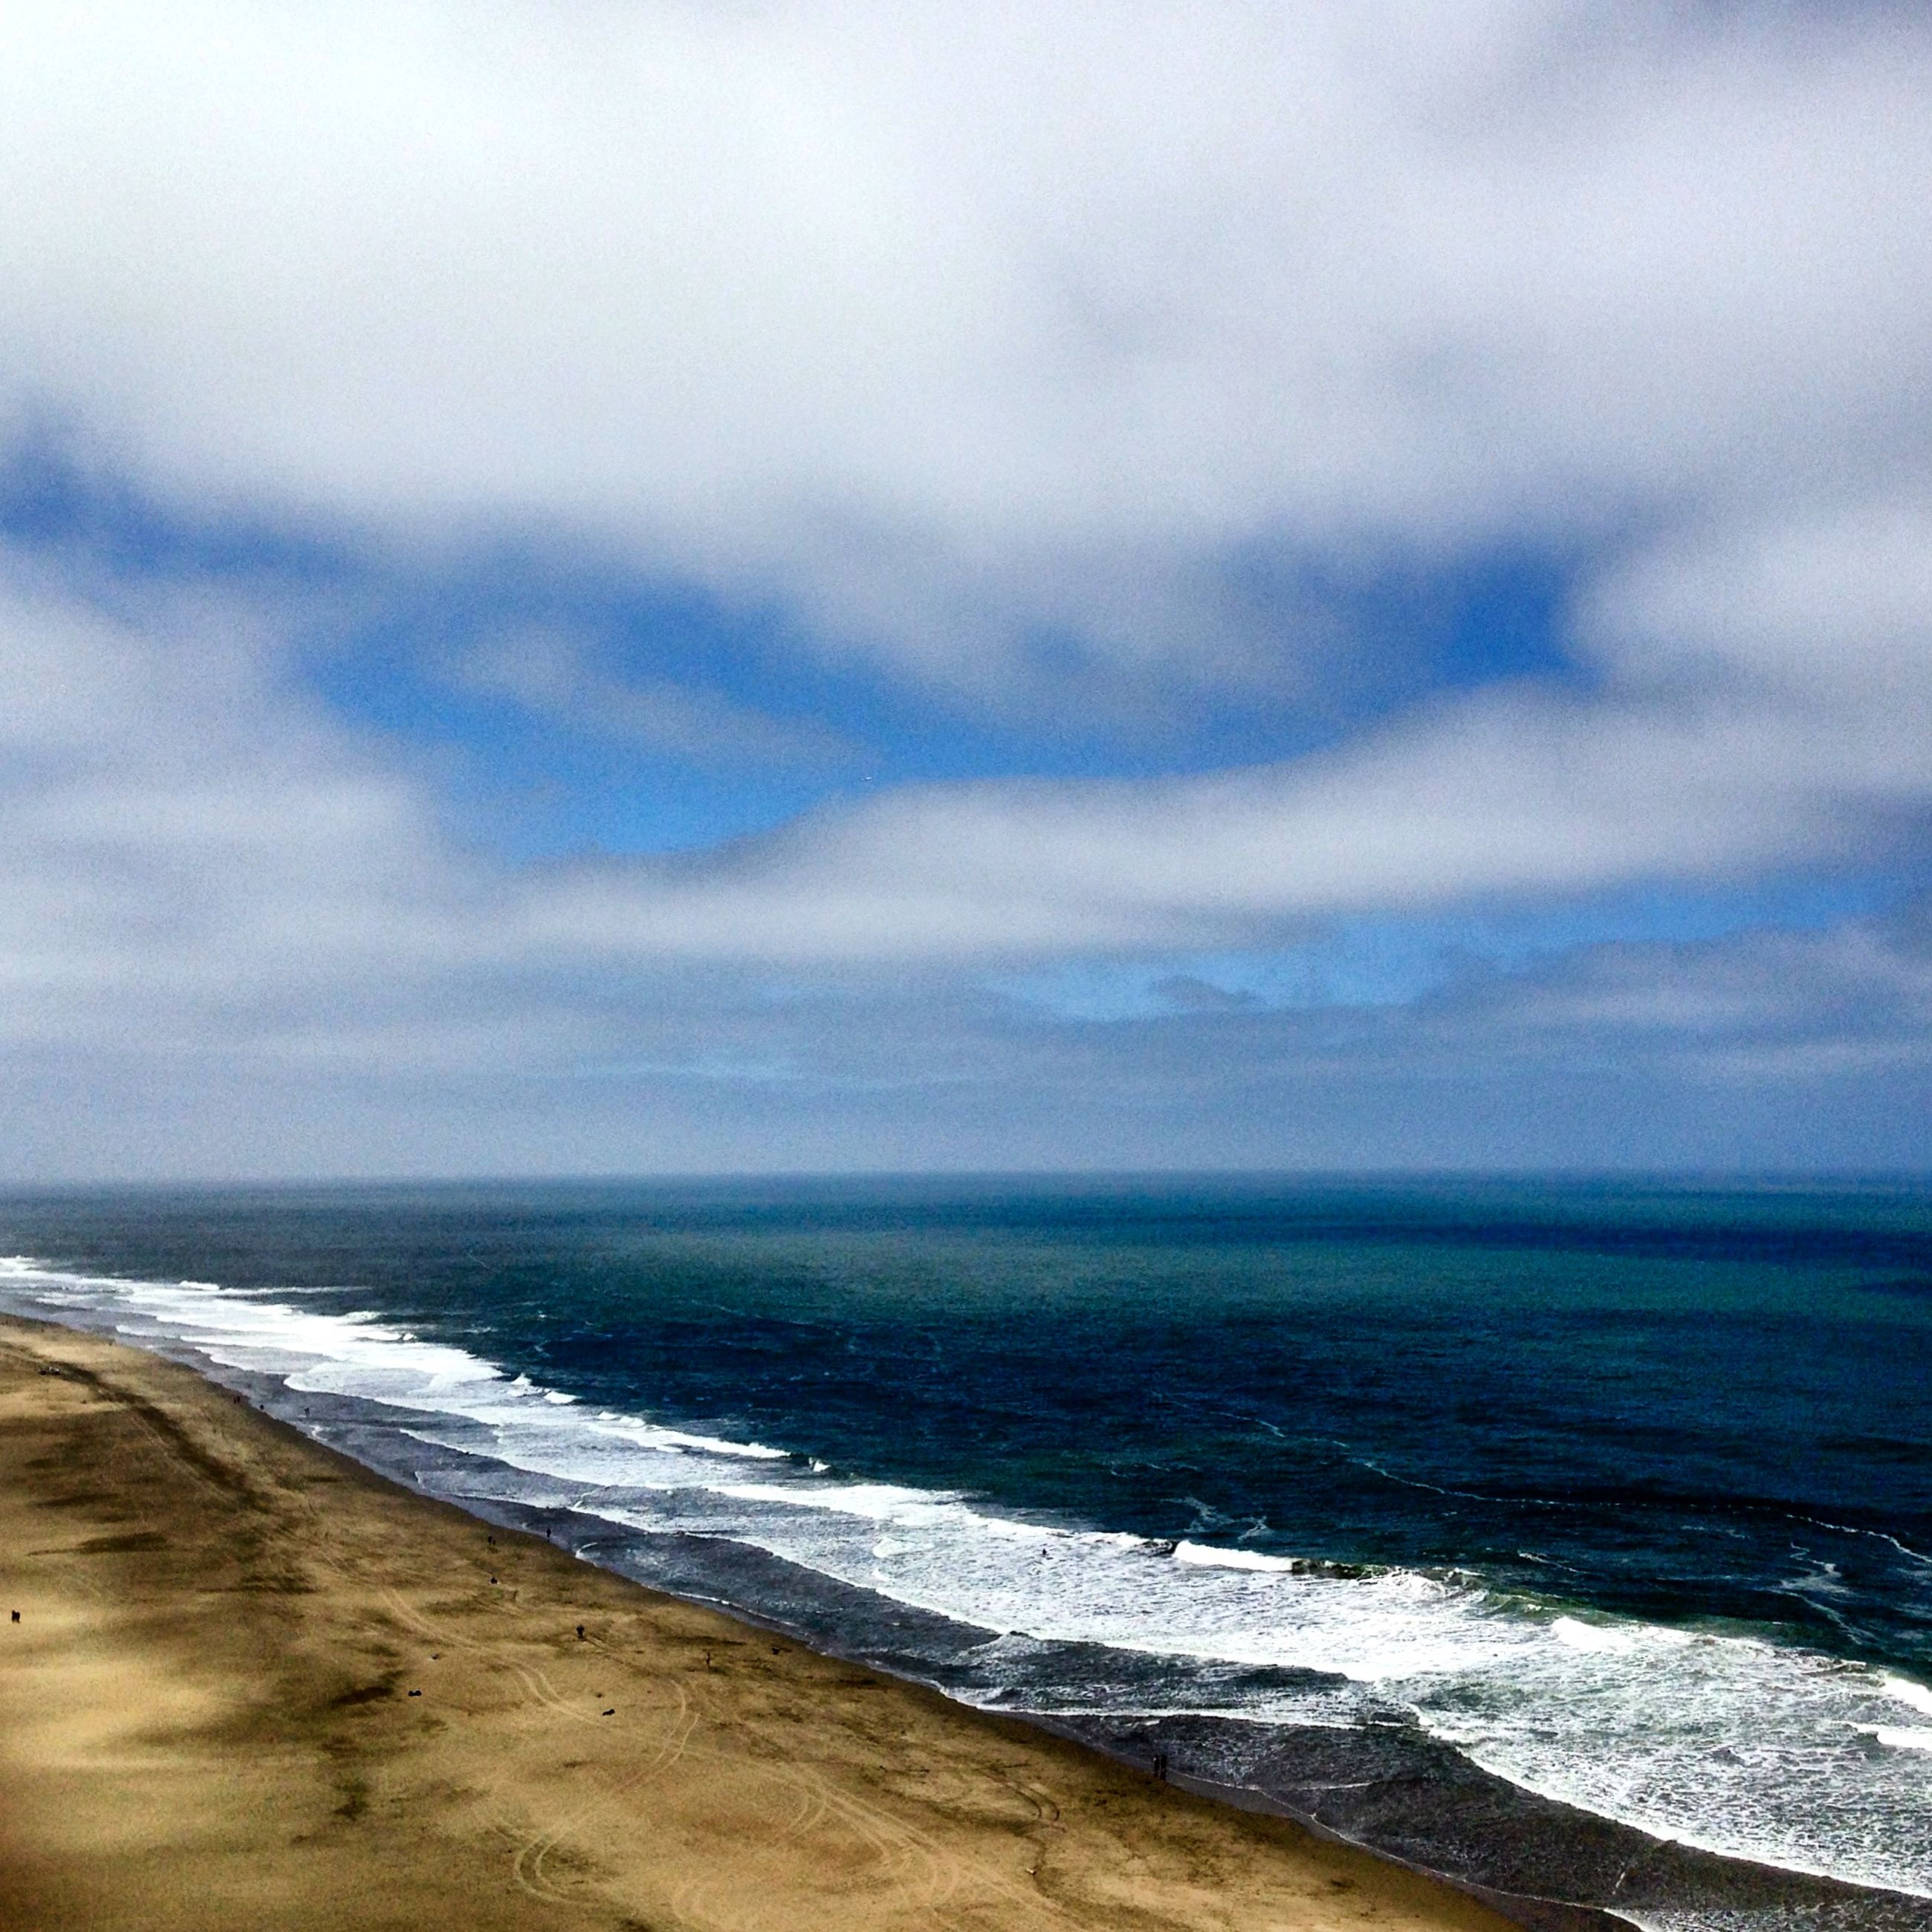 sea, beach, horizon over water, sky, water, scenics, shore, tranquil scene, tranquility, beauty in nature, cloud - sky, cloudy, nature, wave, sand, weather, idyllic, overcast, surf, cloud